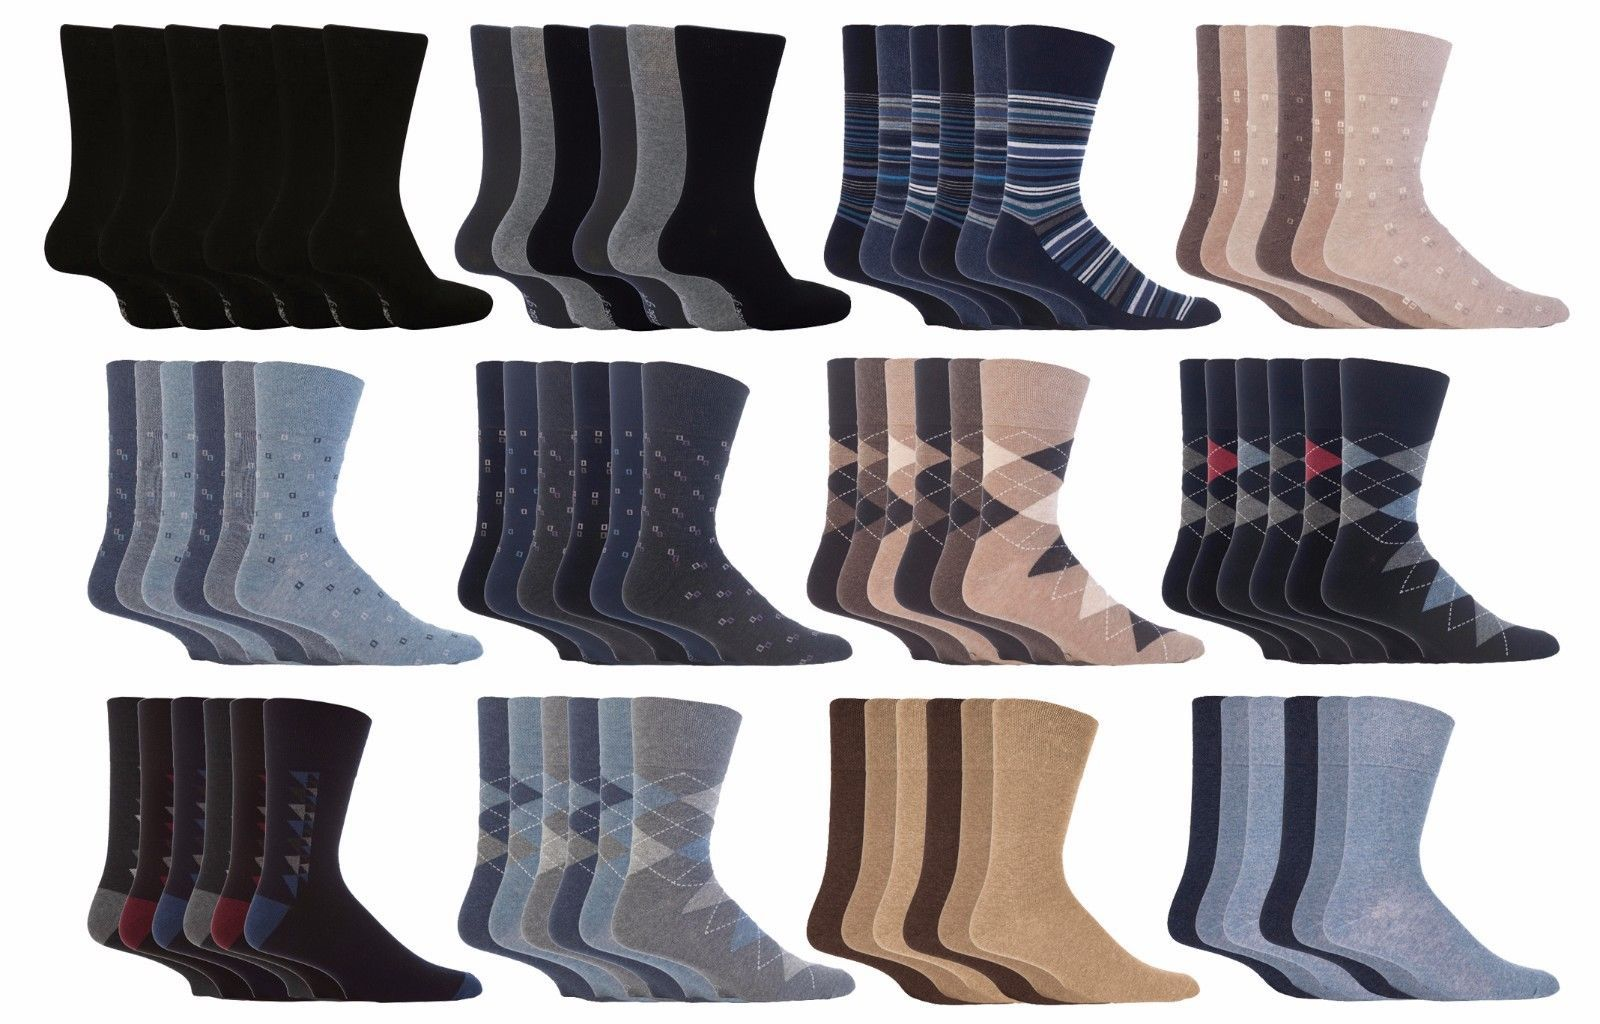 Gentle Grip - 6 Pack Mens Non Binding Cotton Diabetic BIGFOOT Socks 13-15 US